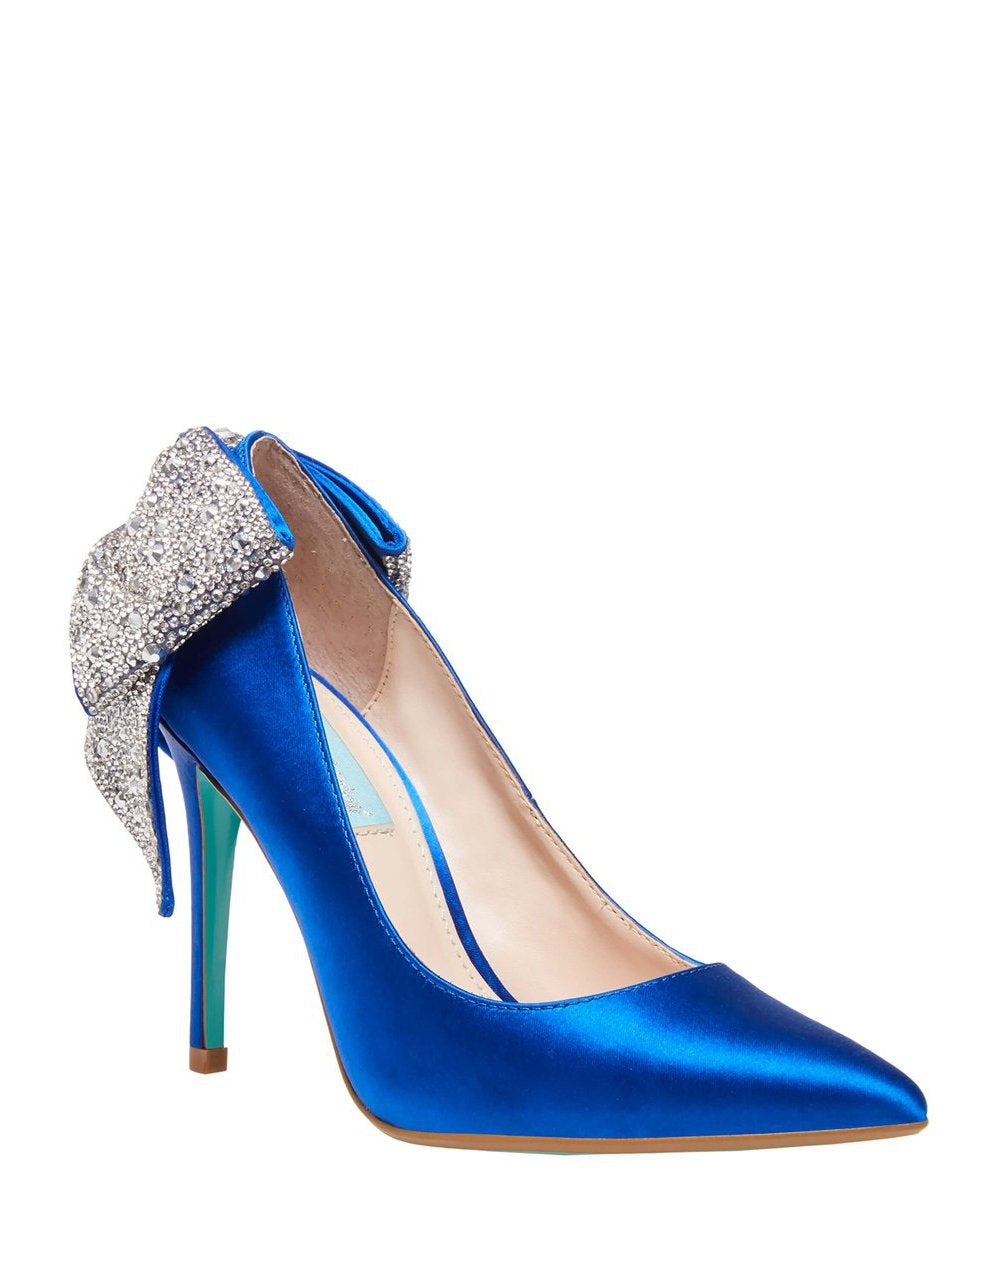 SB-BRYN BLUE SATIN - SHOES - Betsey Johnson